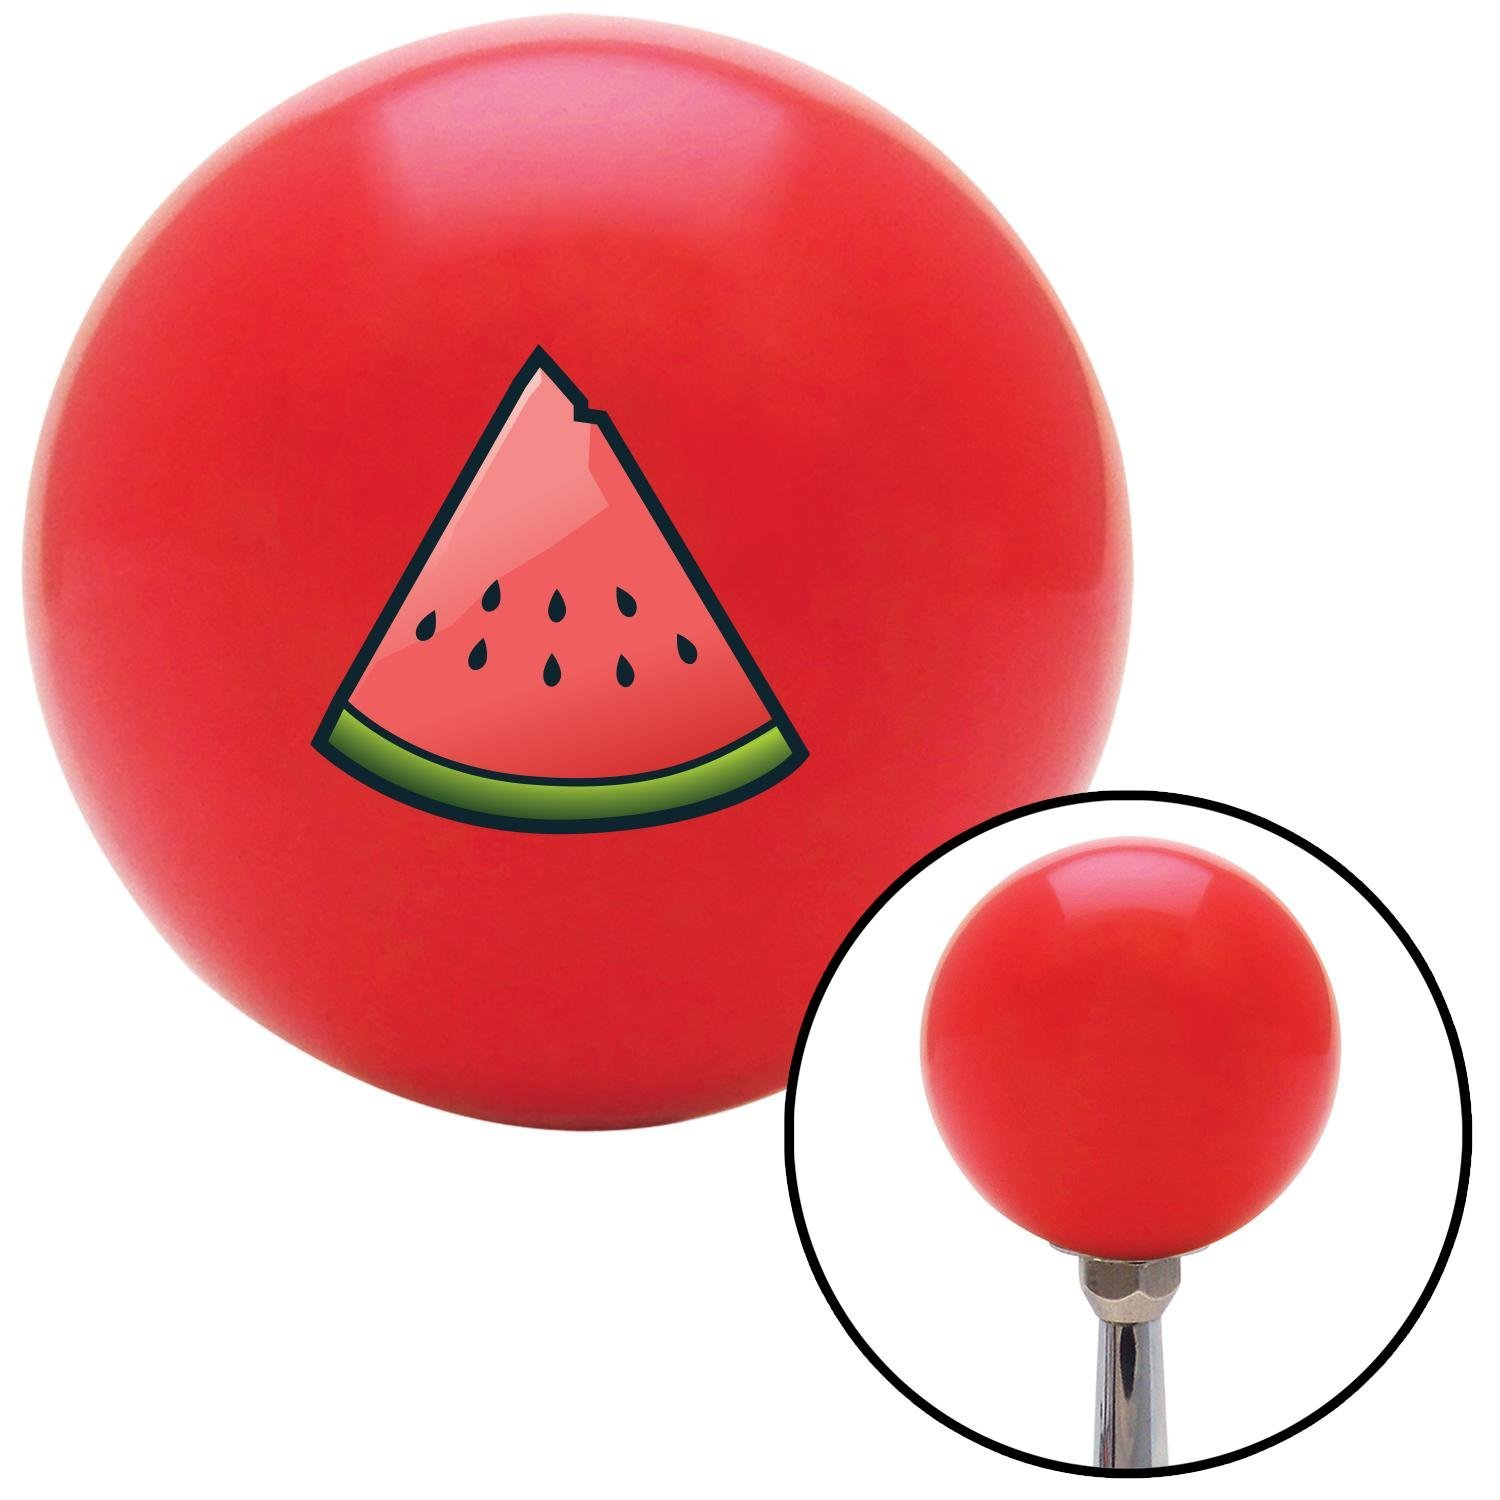 American Shifter 101122 Red Shift Knob with M16 x 1.5 Insert Watermelon